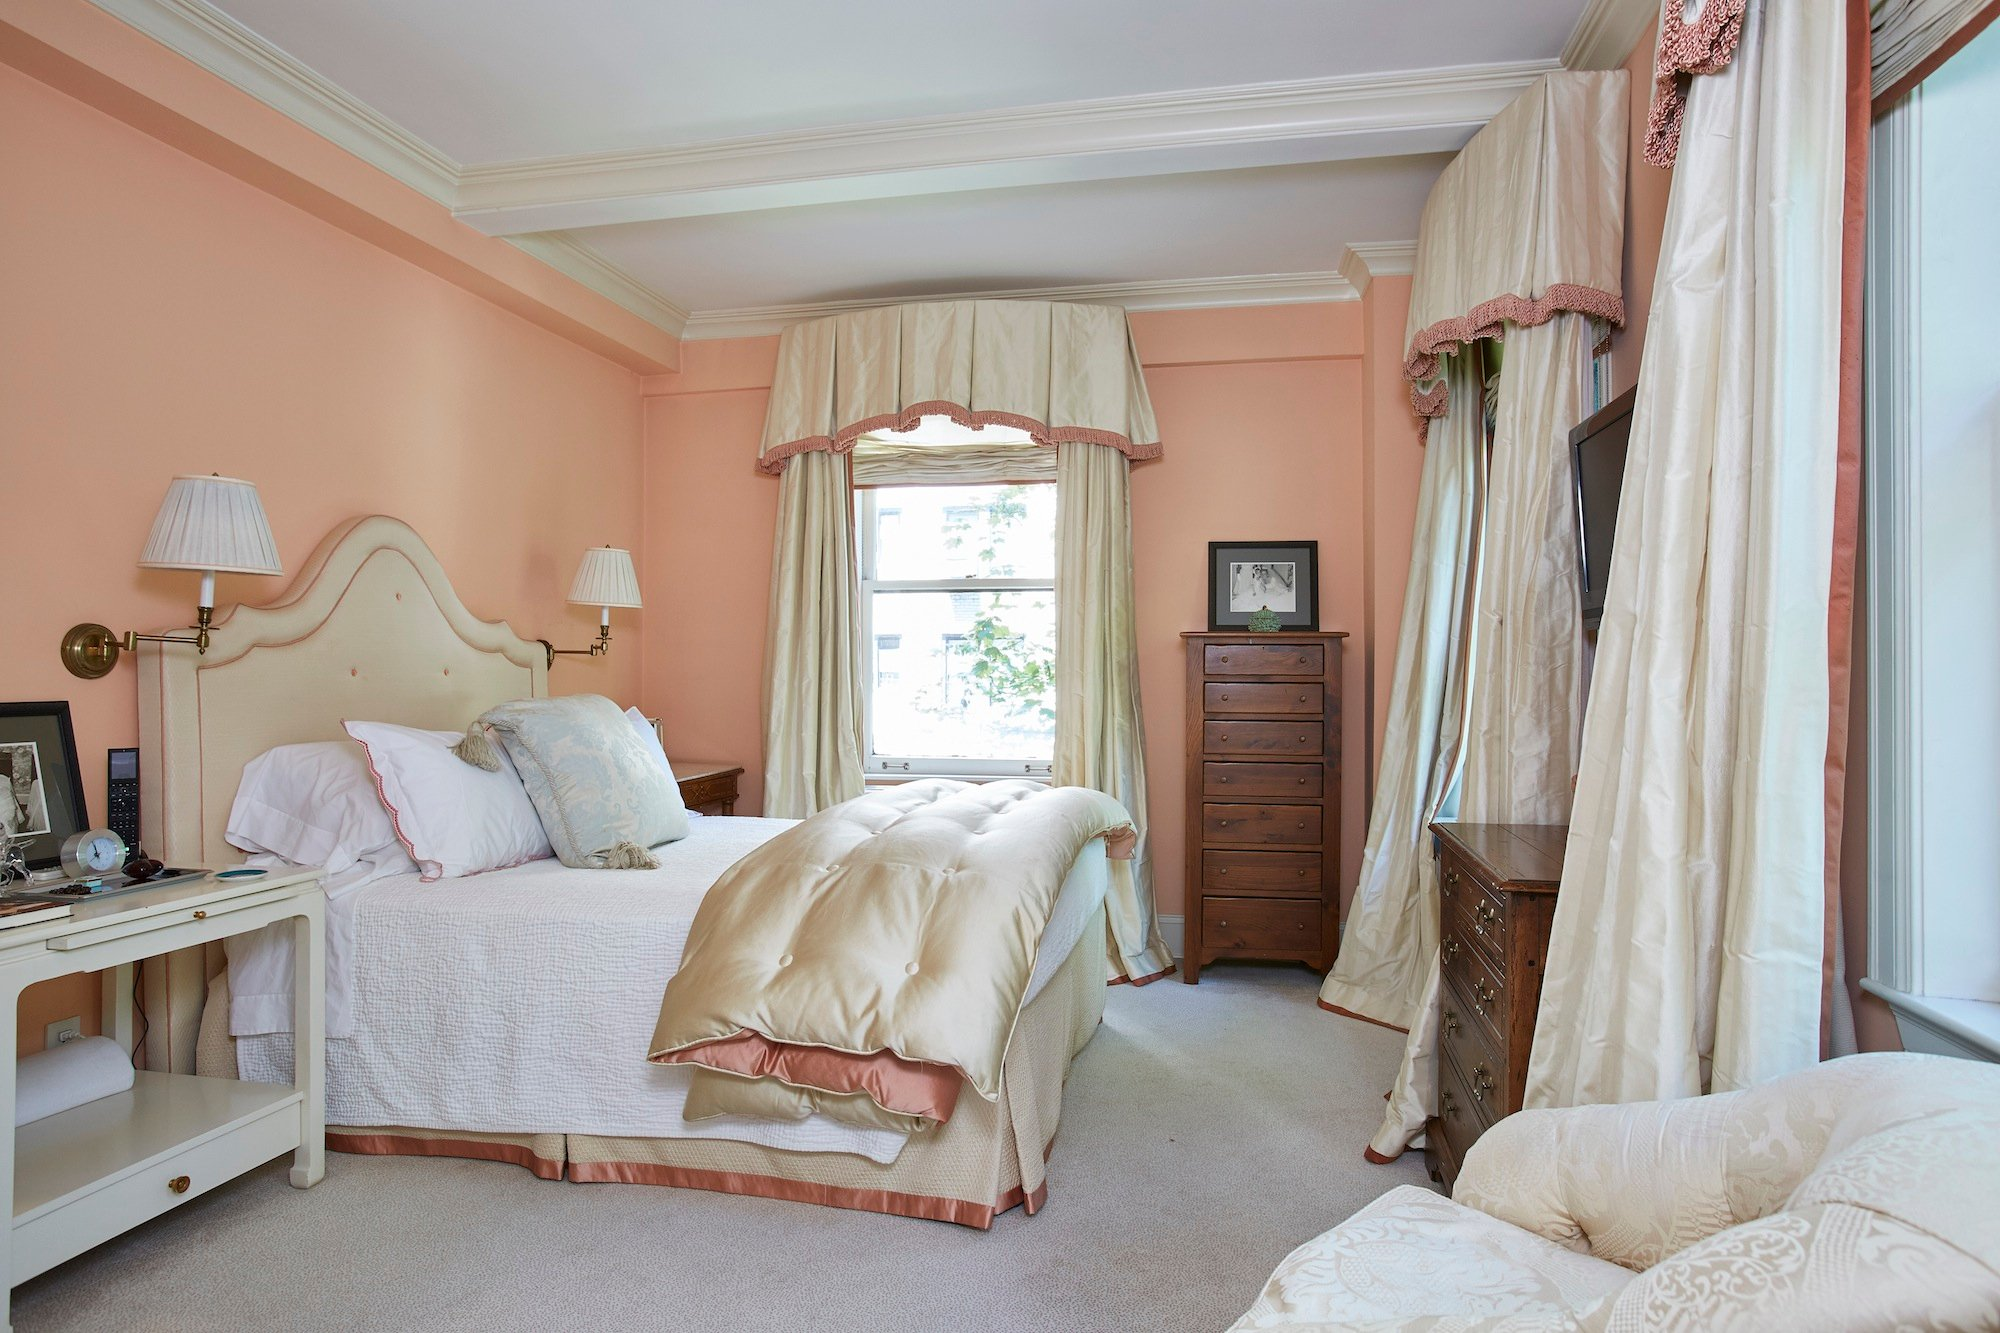 333 East 68th Street, co-op, upper east side, bedroom